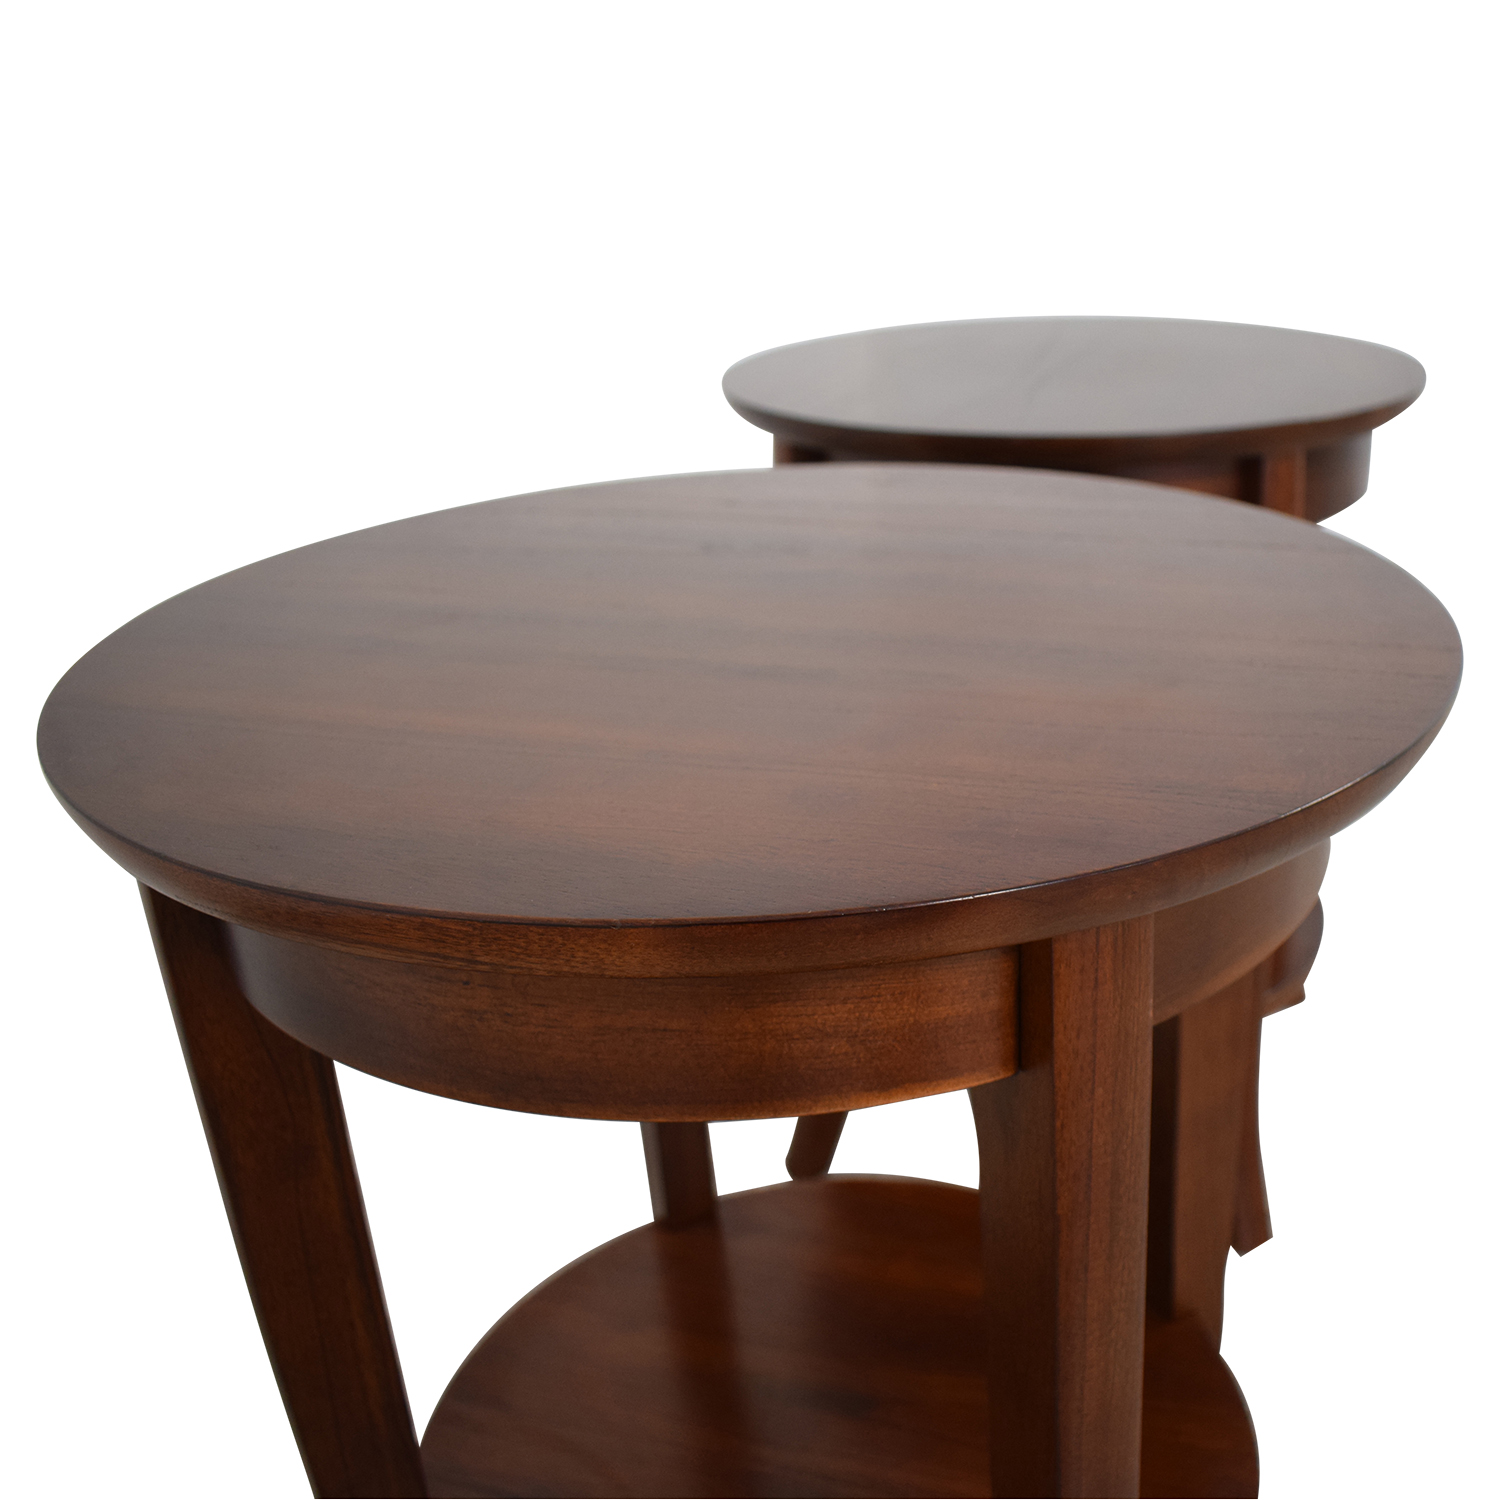 Pottery Barn Pottery Barn Side Tables dimensions